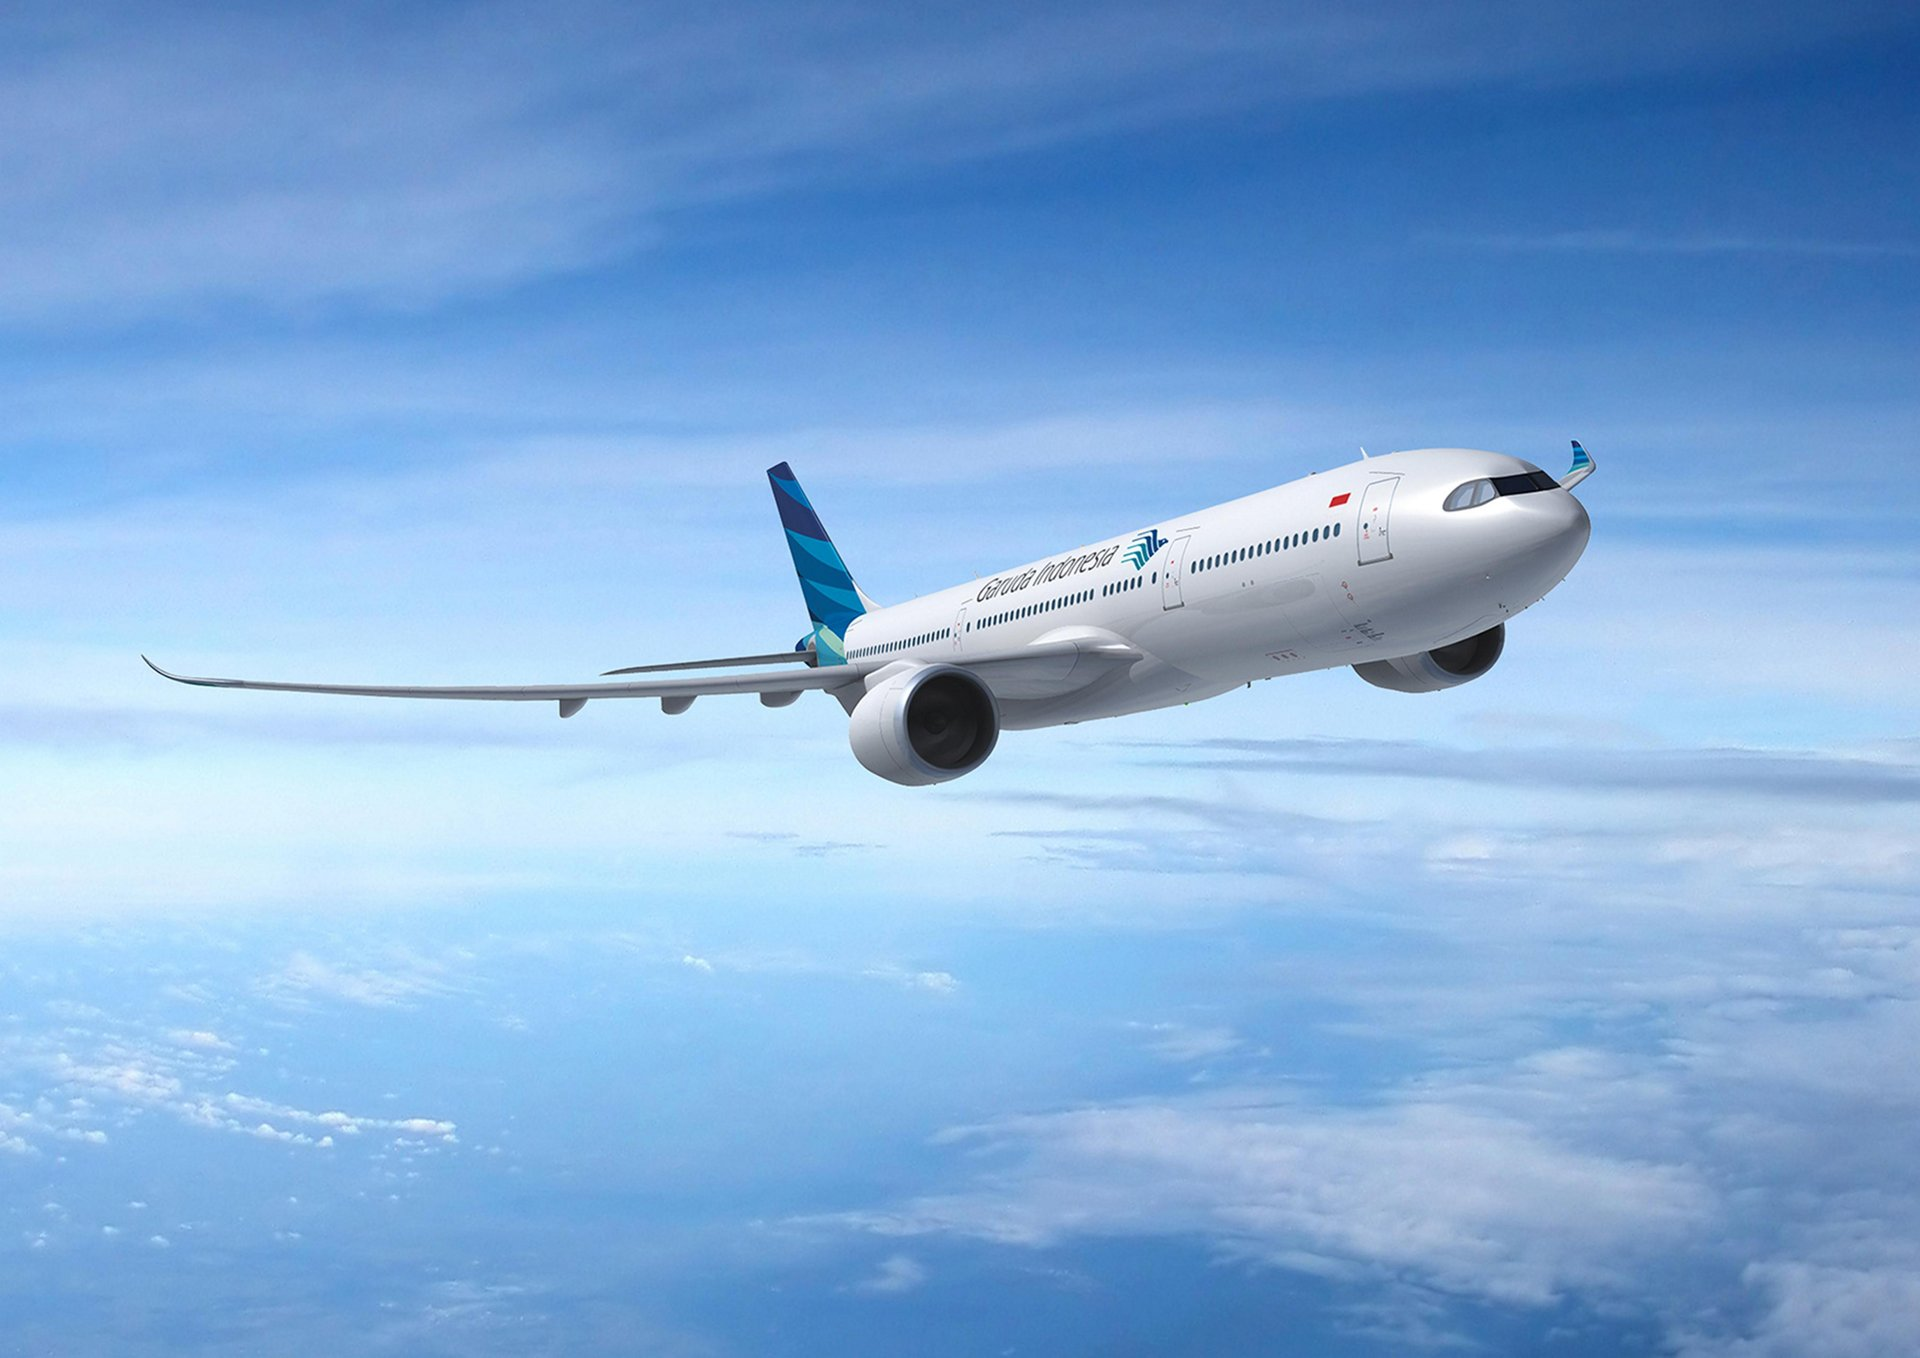 To support the company's growth and future business expansion, Garuda Indonesia has confirmed an order with Airbus for 14 highly efficient A330-900neo aircraft